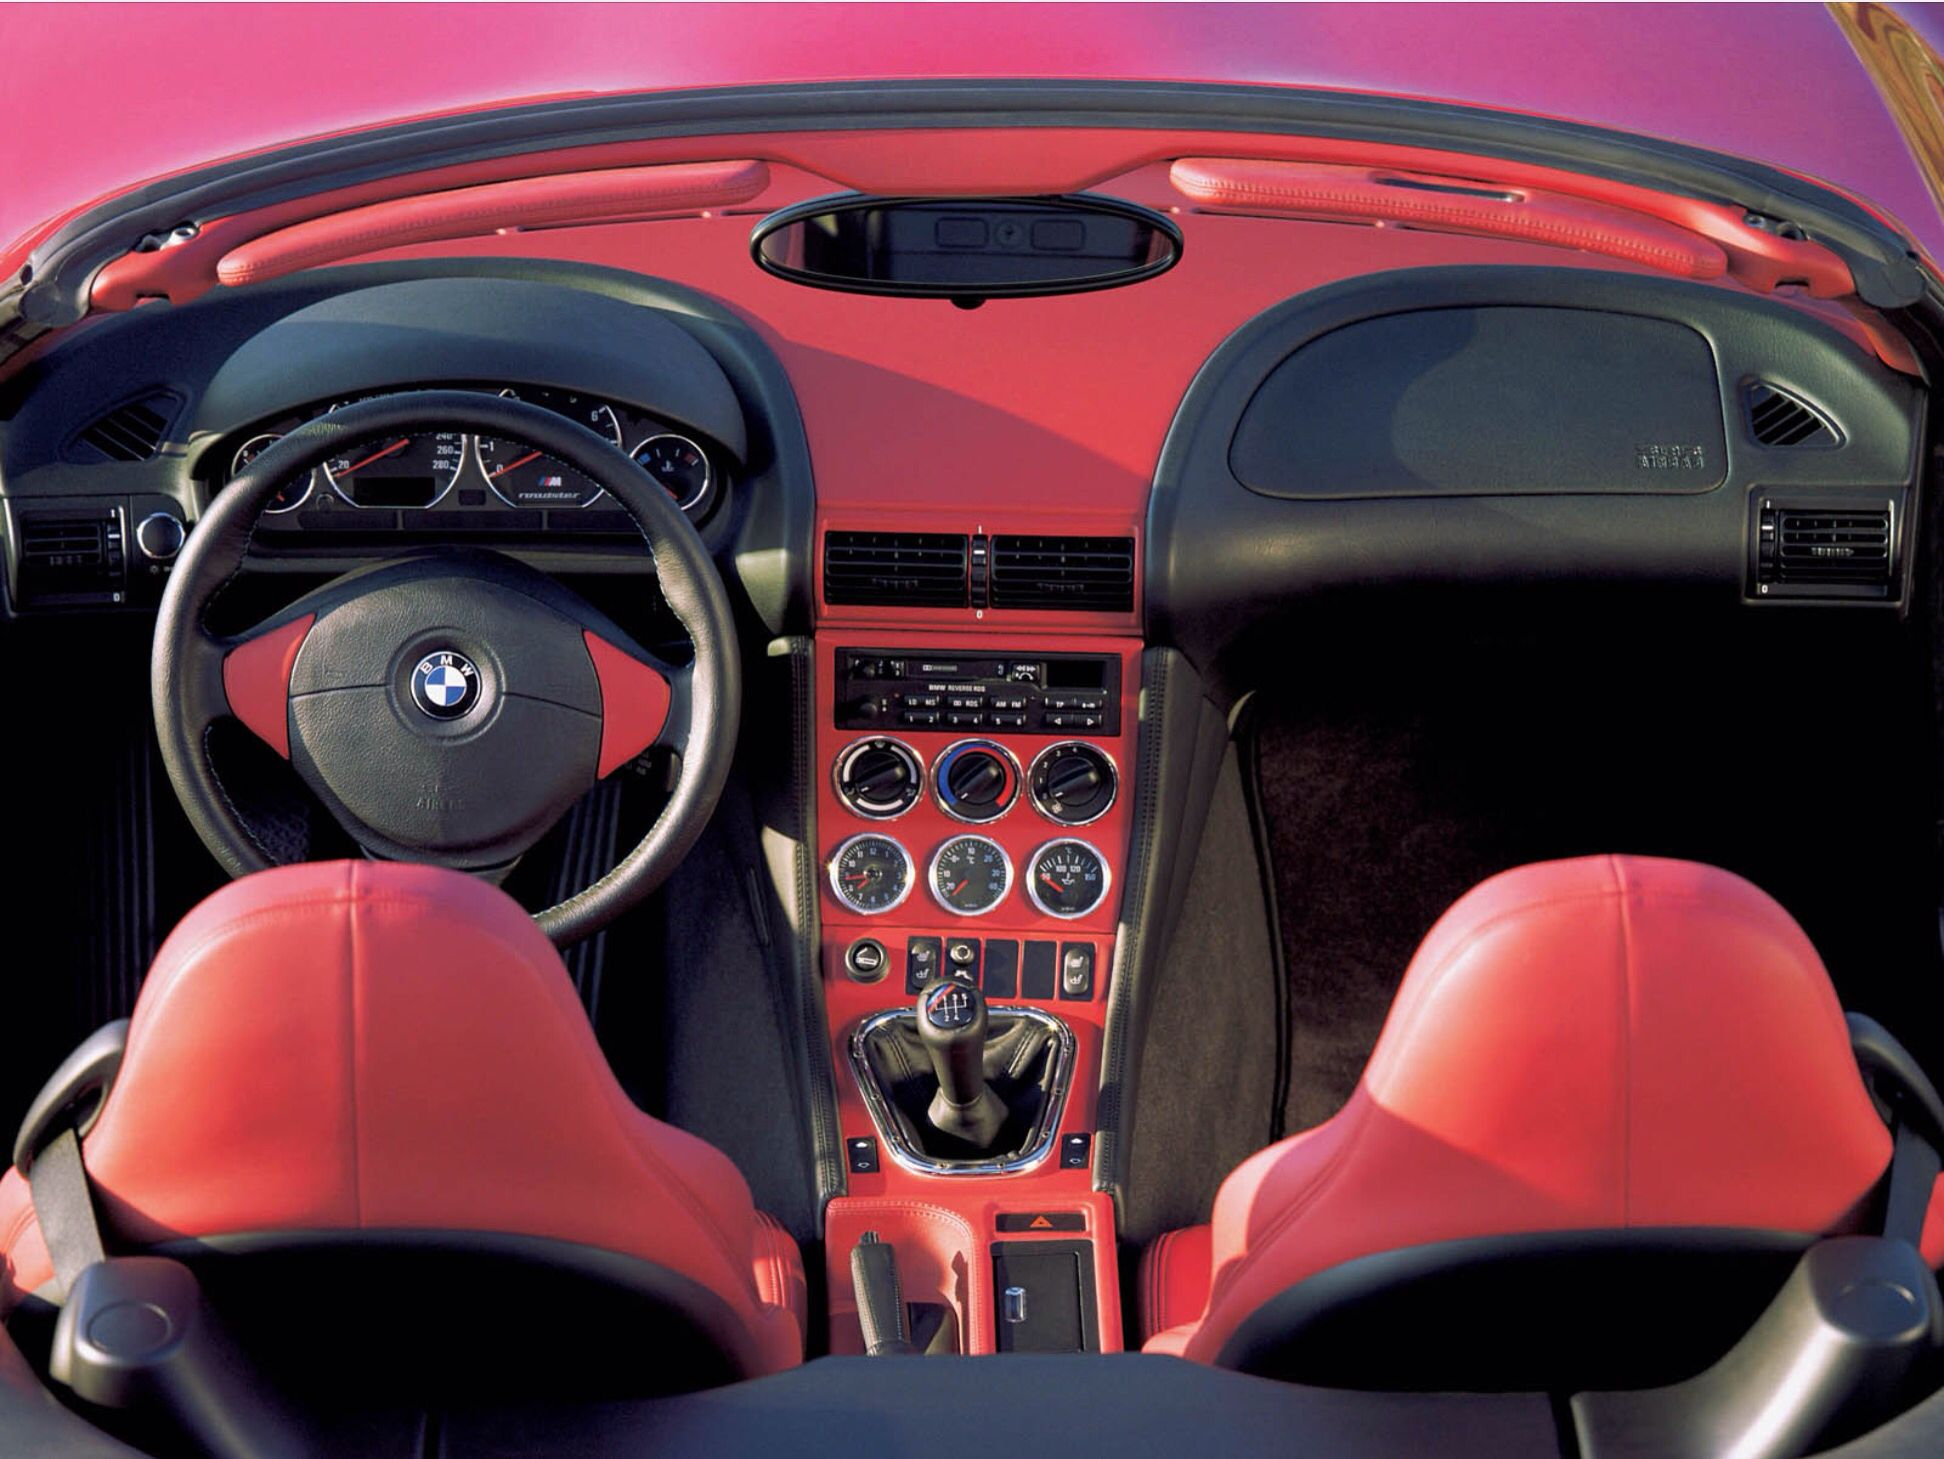 bmw z3 m roadster mine has this fabulous interior colour scheme but is right hand drive  [ 1944 x 1459 Pixel ]